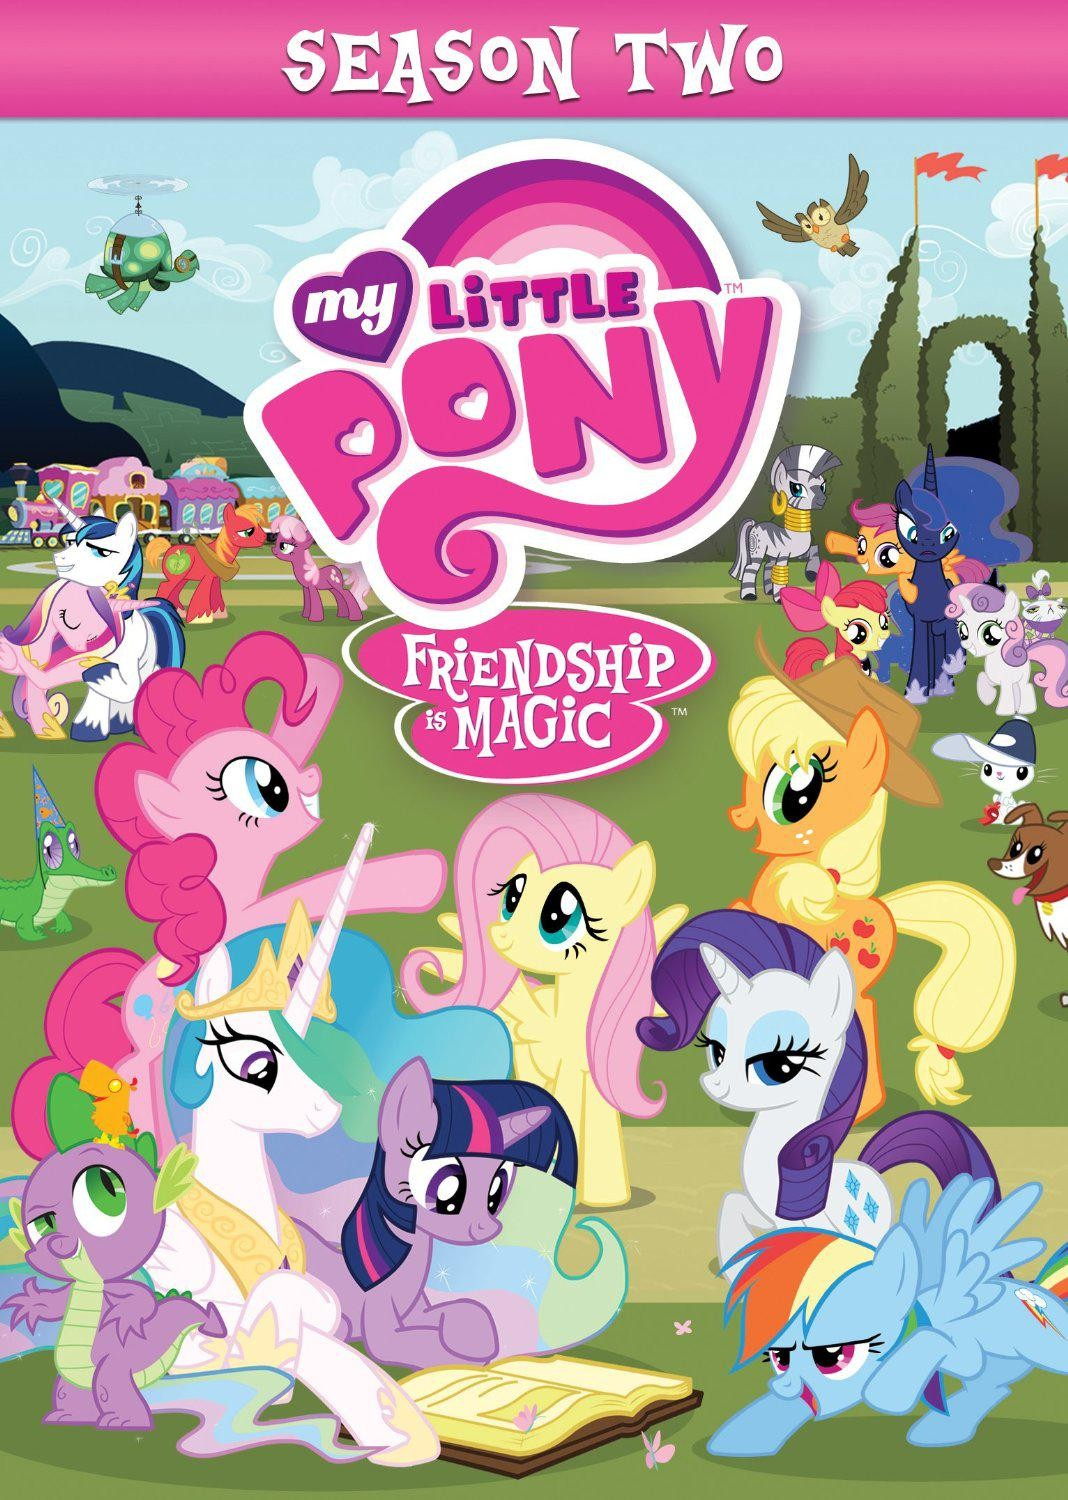 My Little Pony: Friendship Is Magic : S2 小马驹G4 第二季